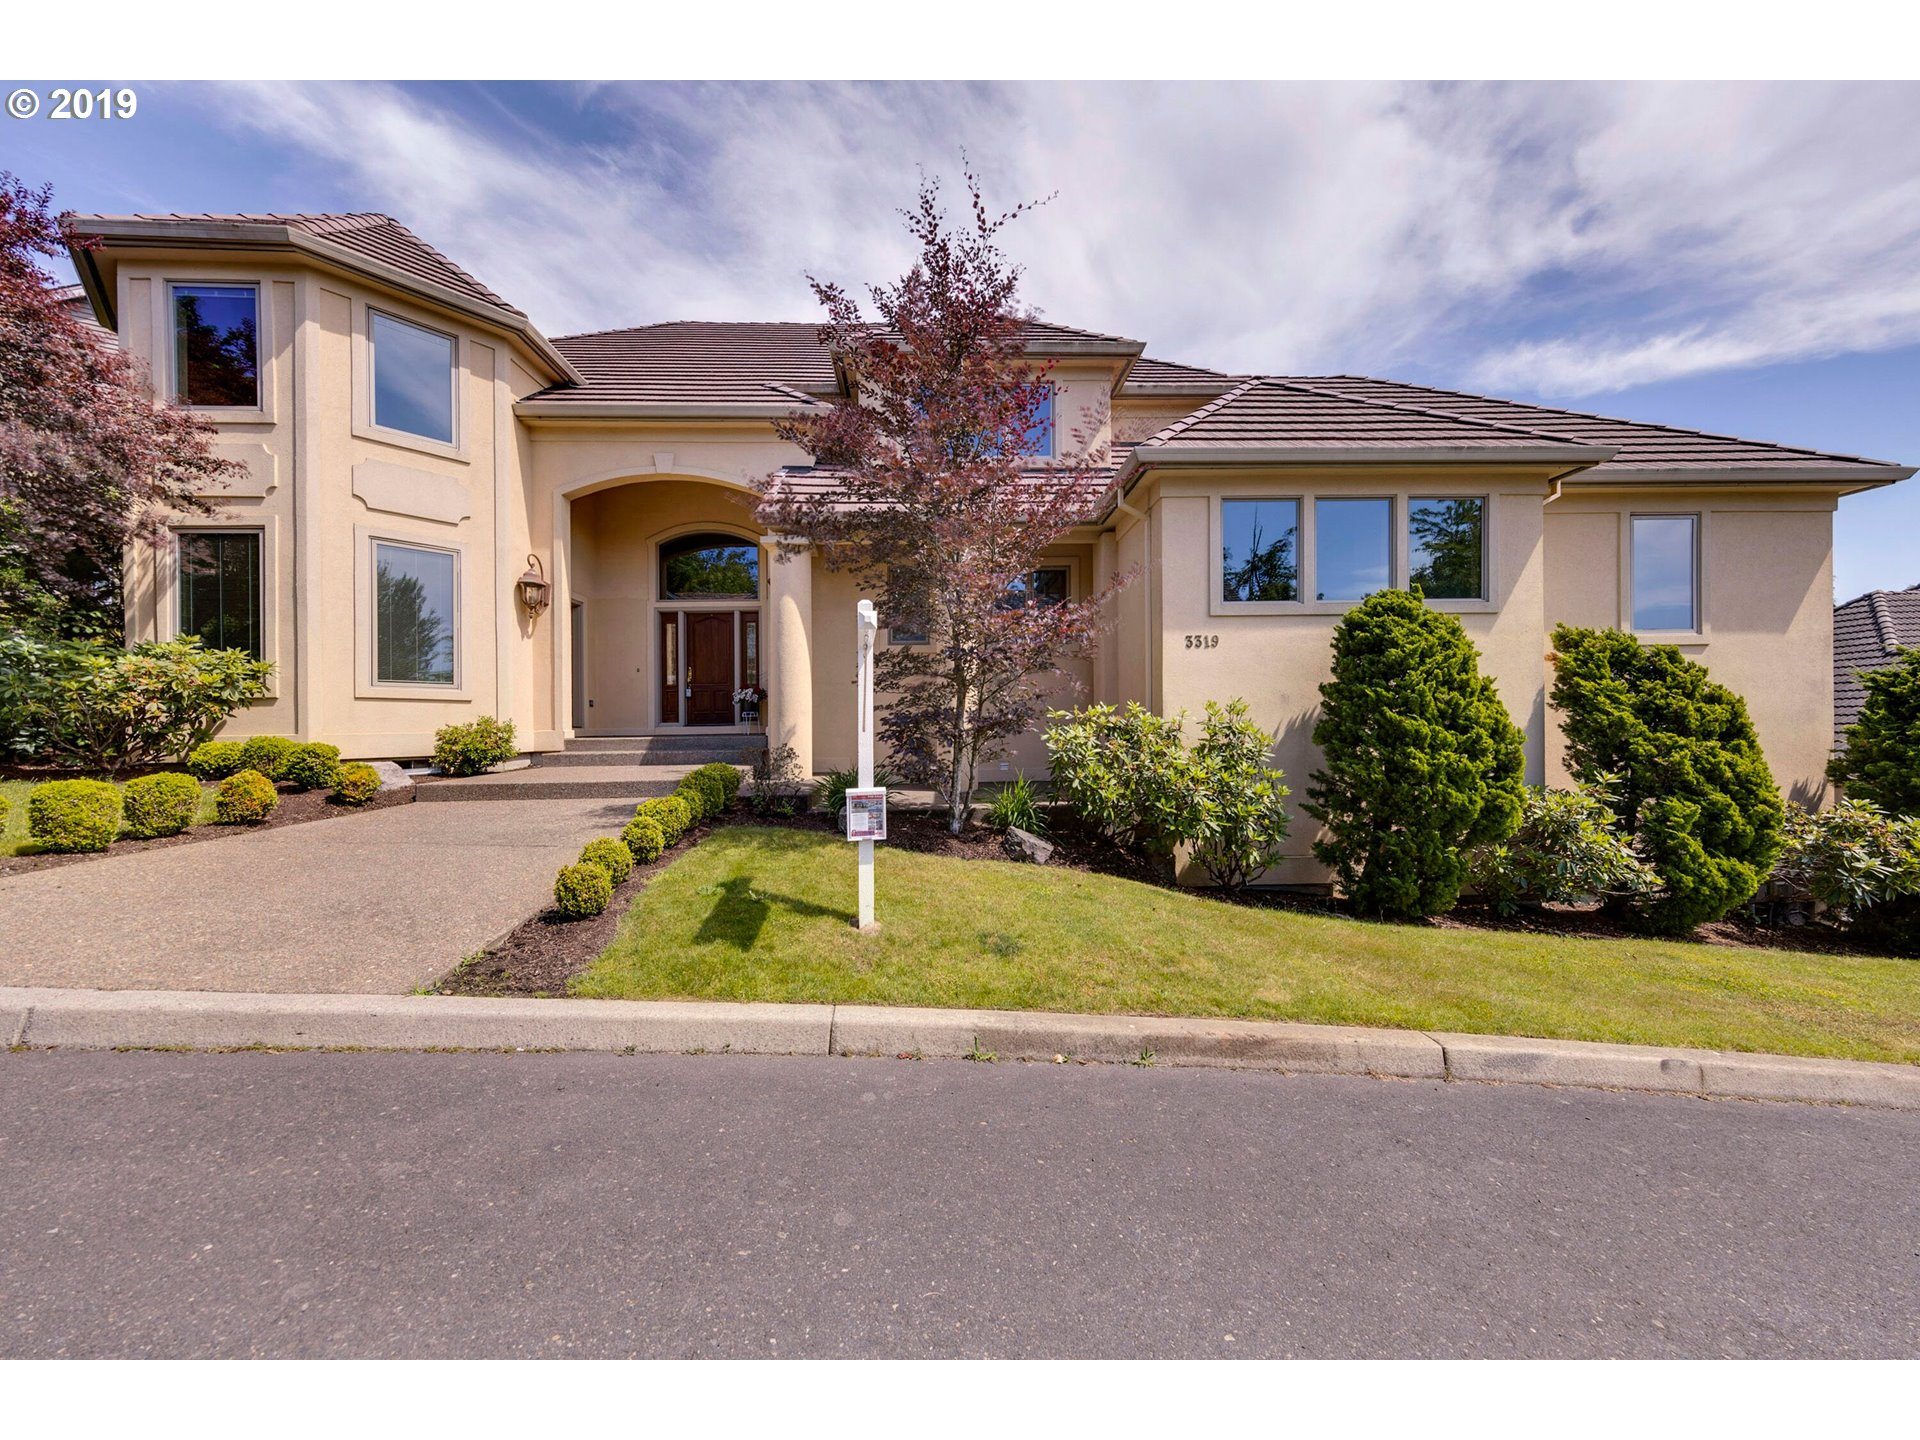 3319 NW SPENCER ST, Portland OR 97229